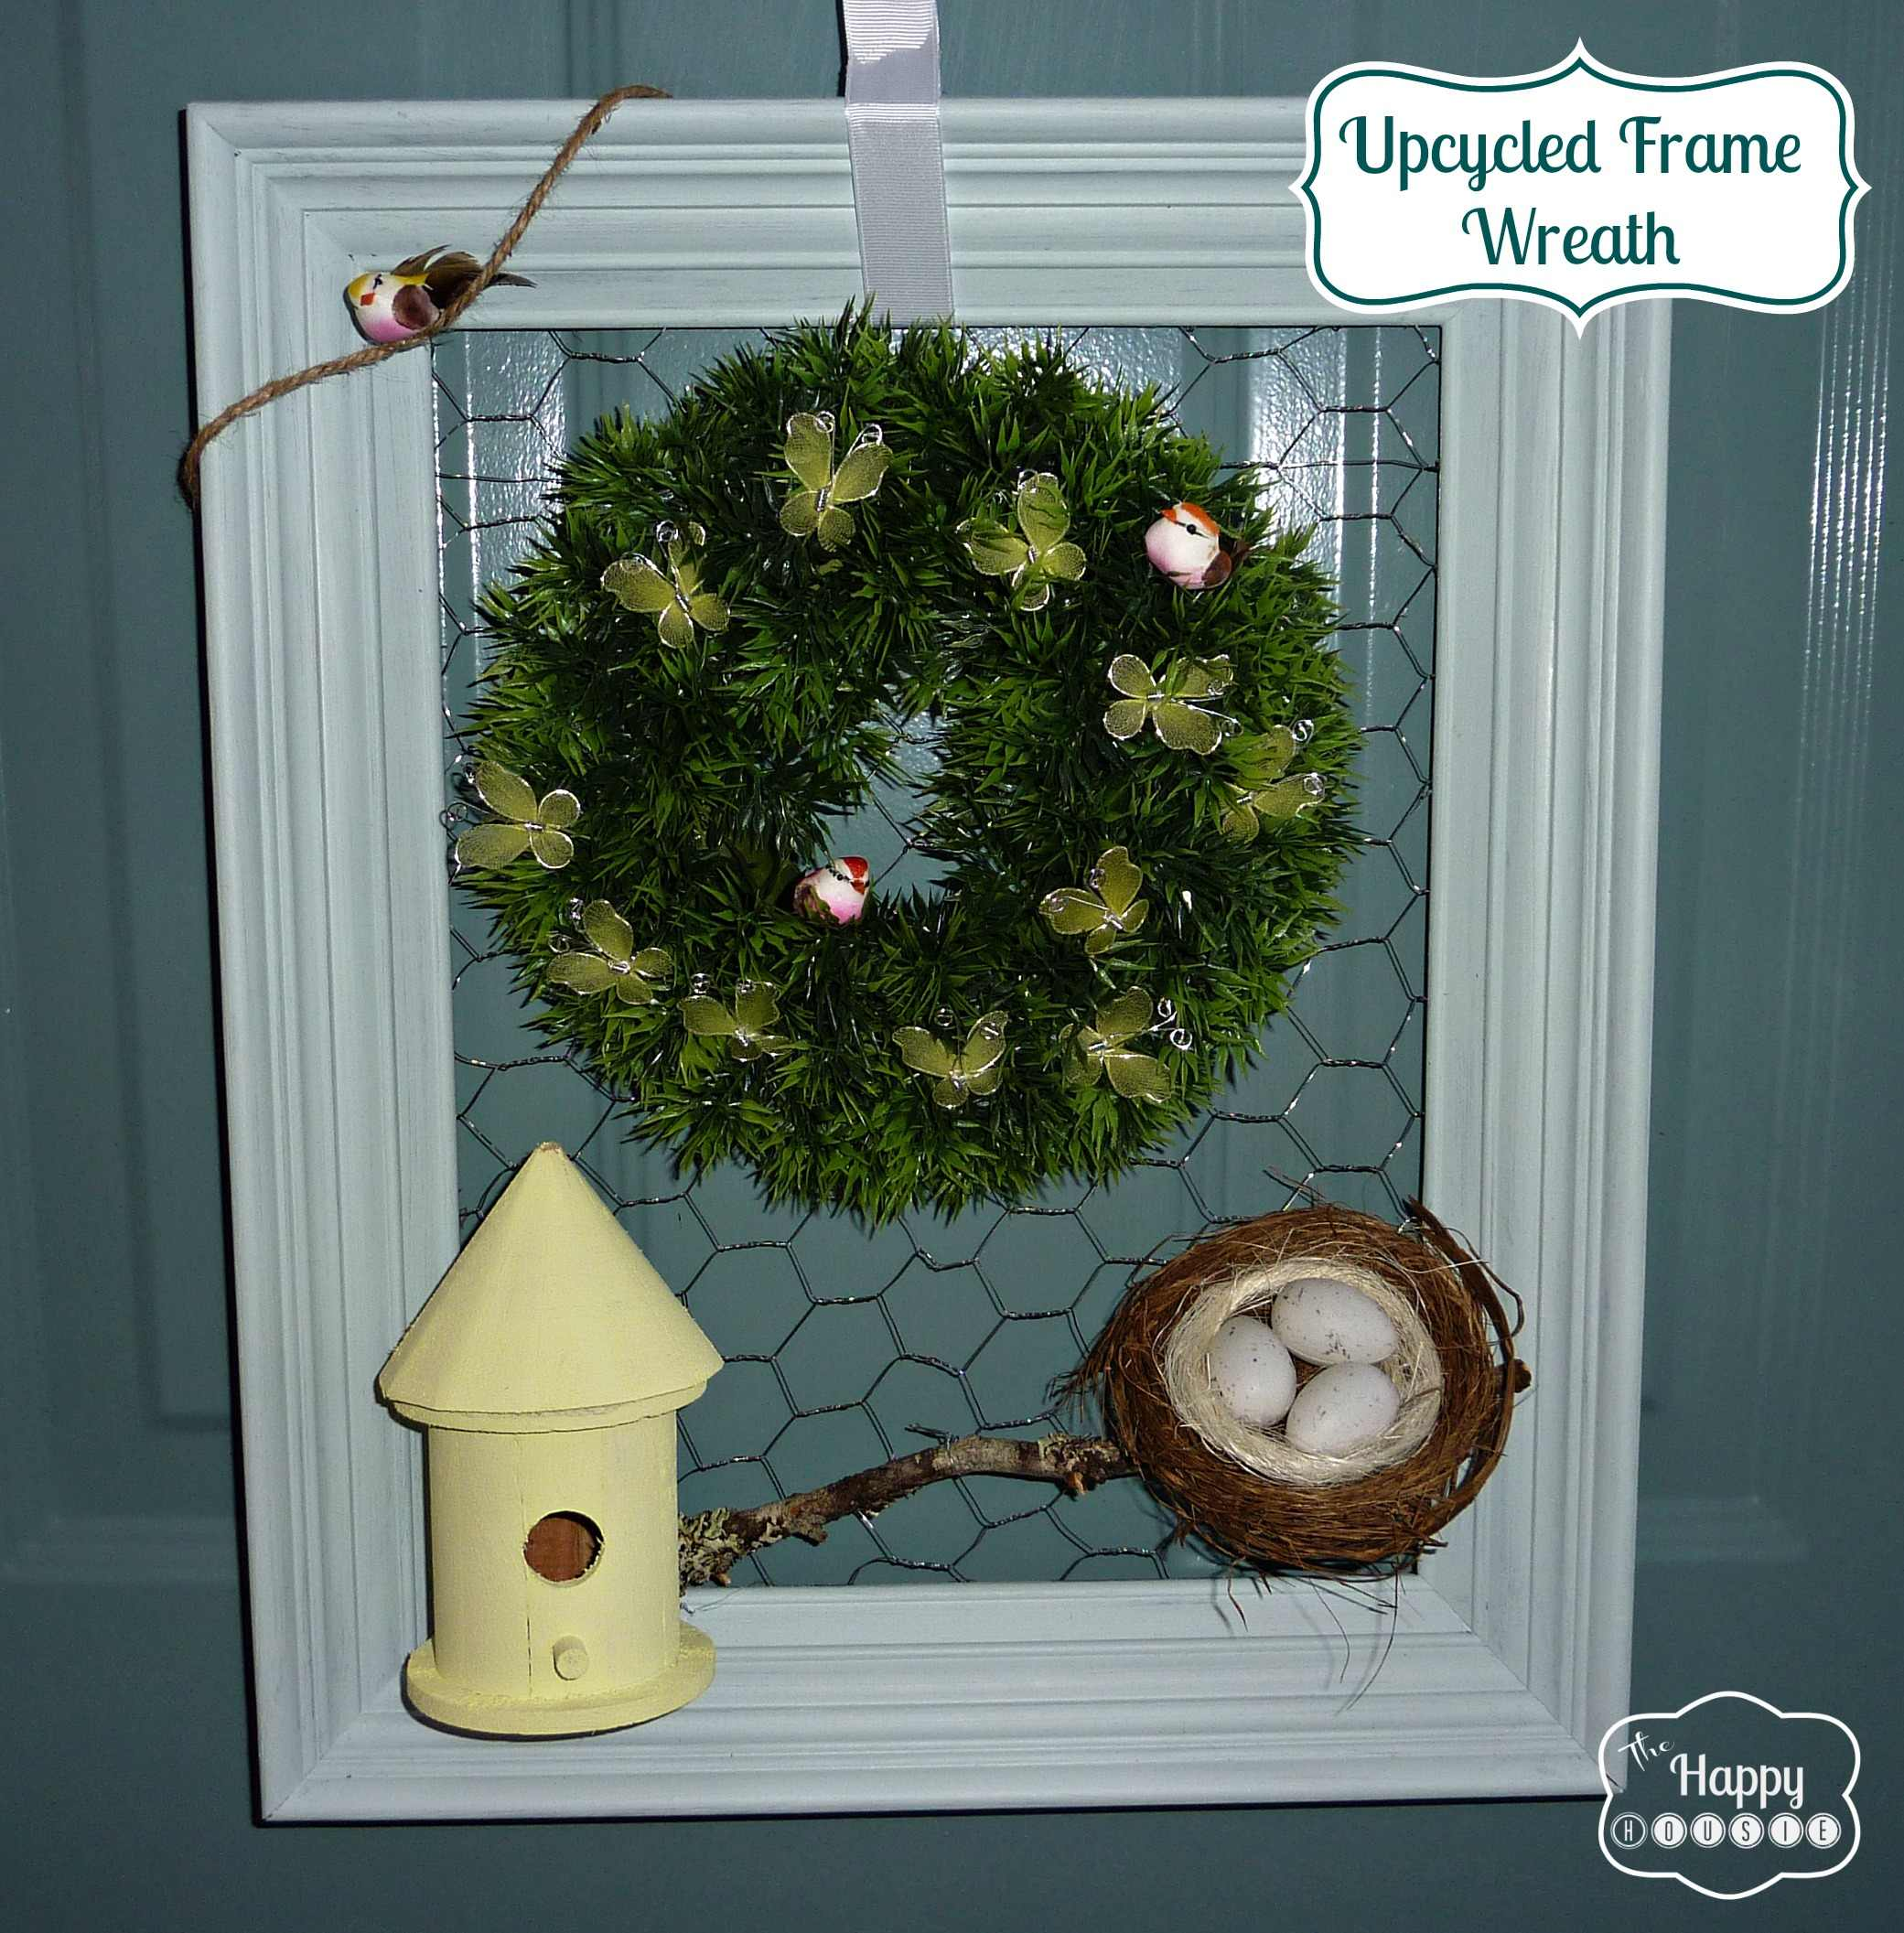 4F Craftin' Upcycled Vintage Frame Wreath for Spring